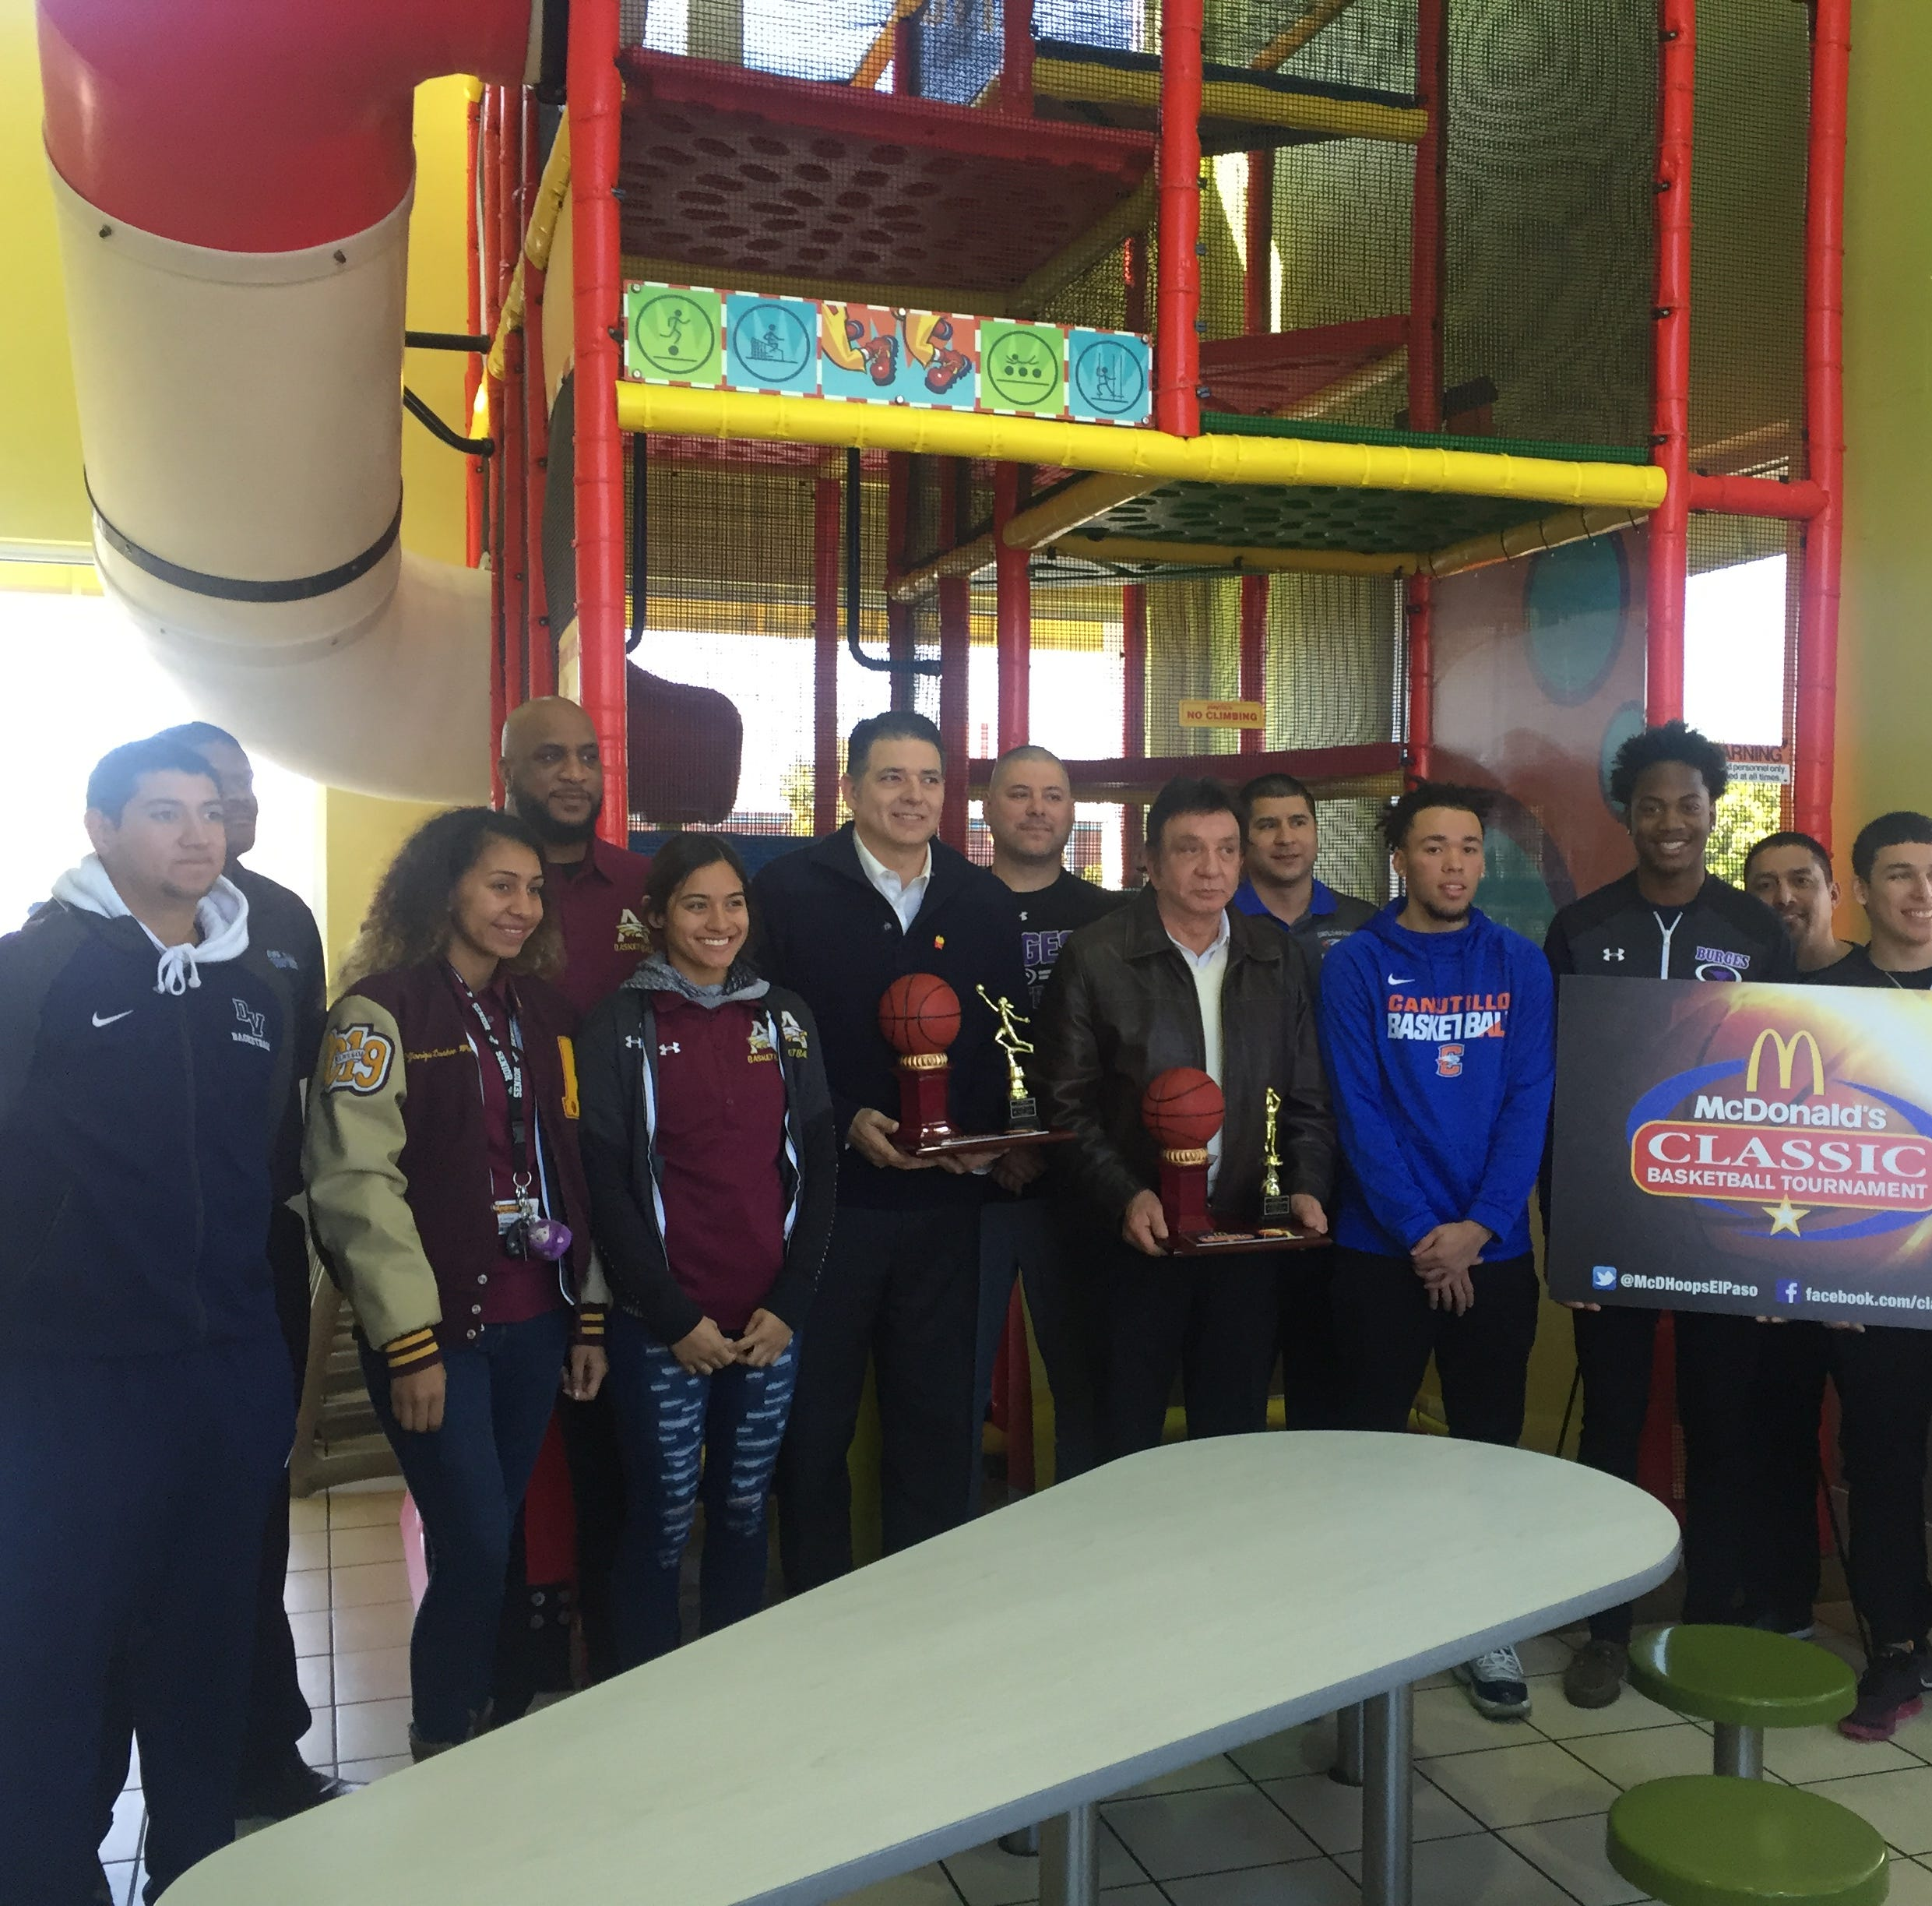 Teams gather together for Tuesday's announcement of this year's McDonald's Classic Basketball Tournament, Dec. 6-8.